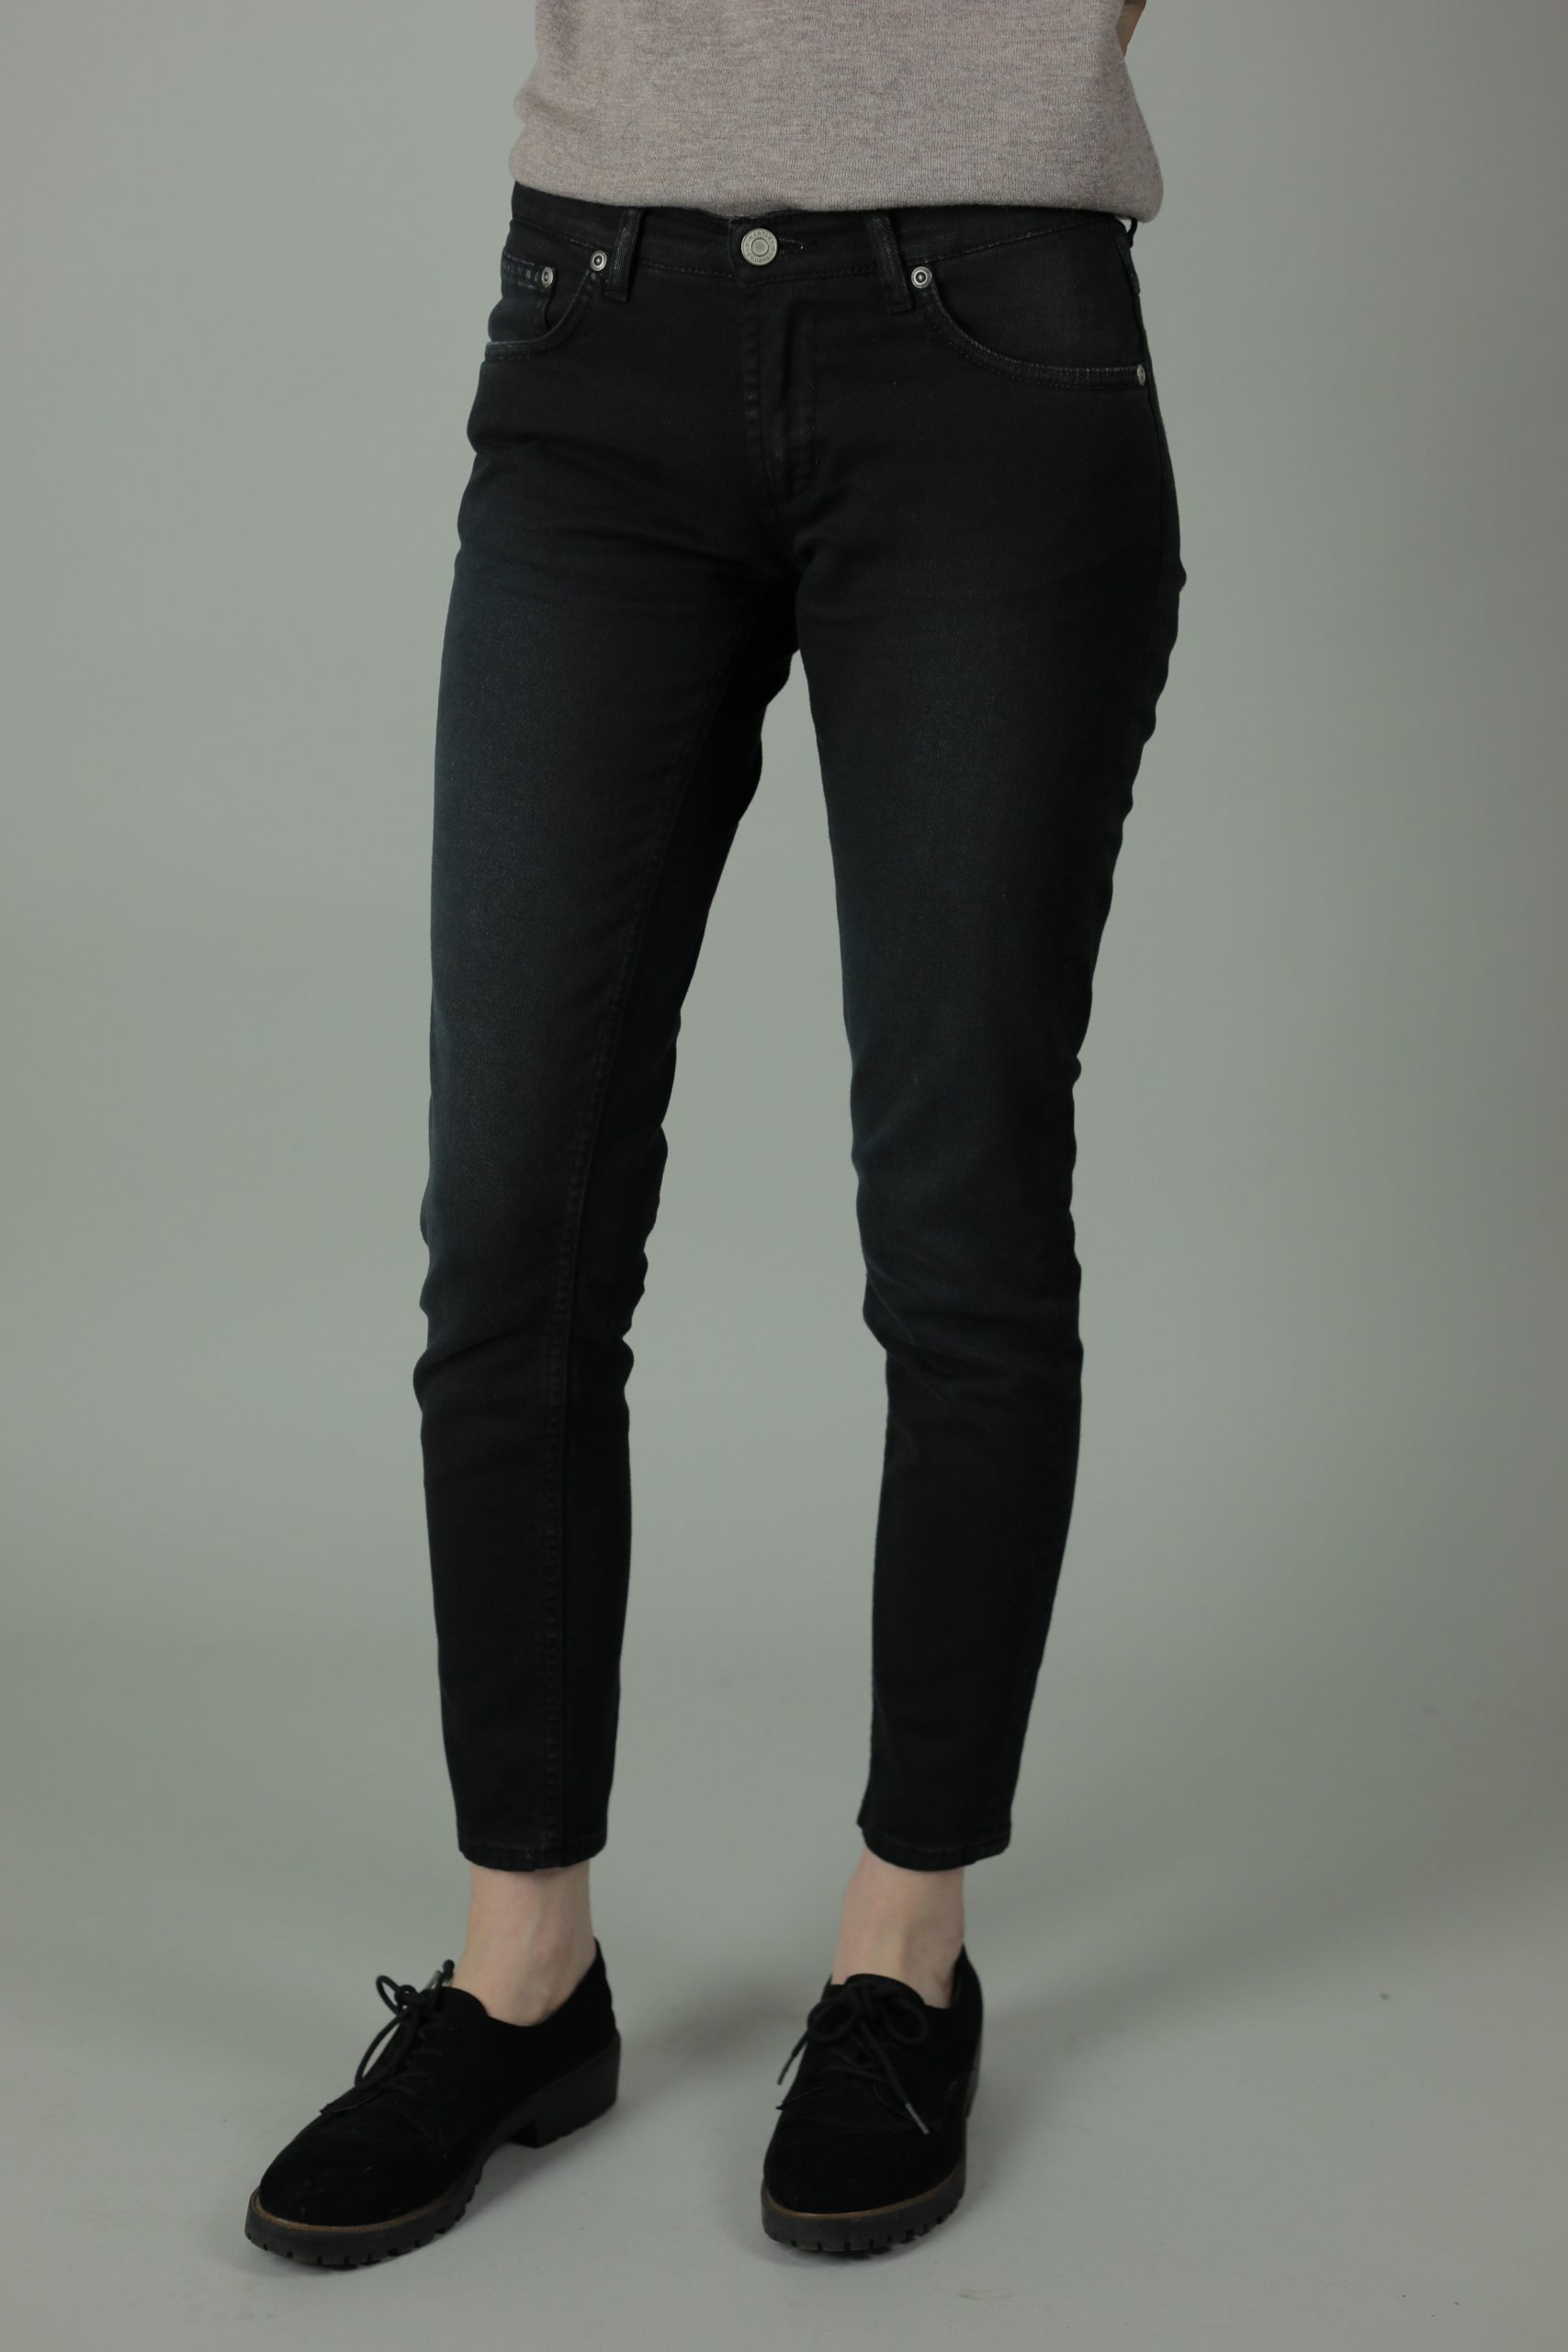 With 98% cotton and 2% elastane Meghan Jean is the skinny leg medium waist fit built for durability. The Meghan Paris White & Black jeans are made with super-stretchy denim for a comfortable feel, fit and style year after year.